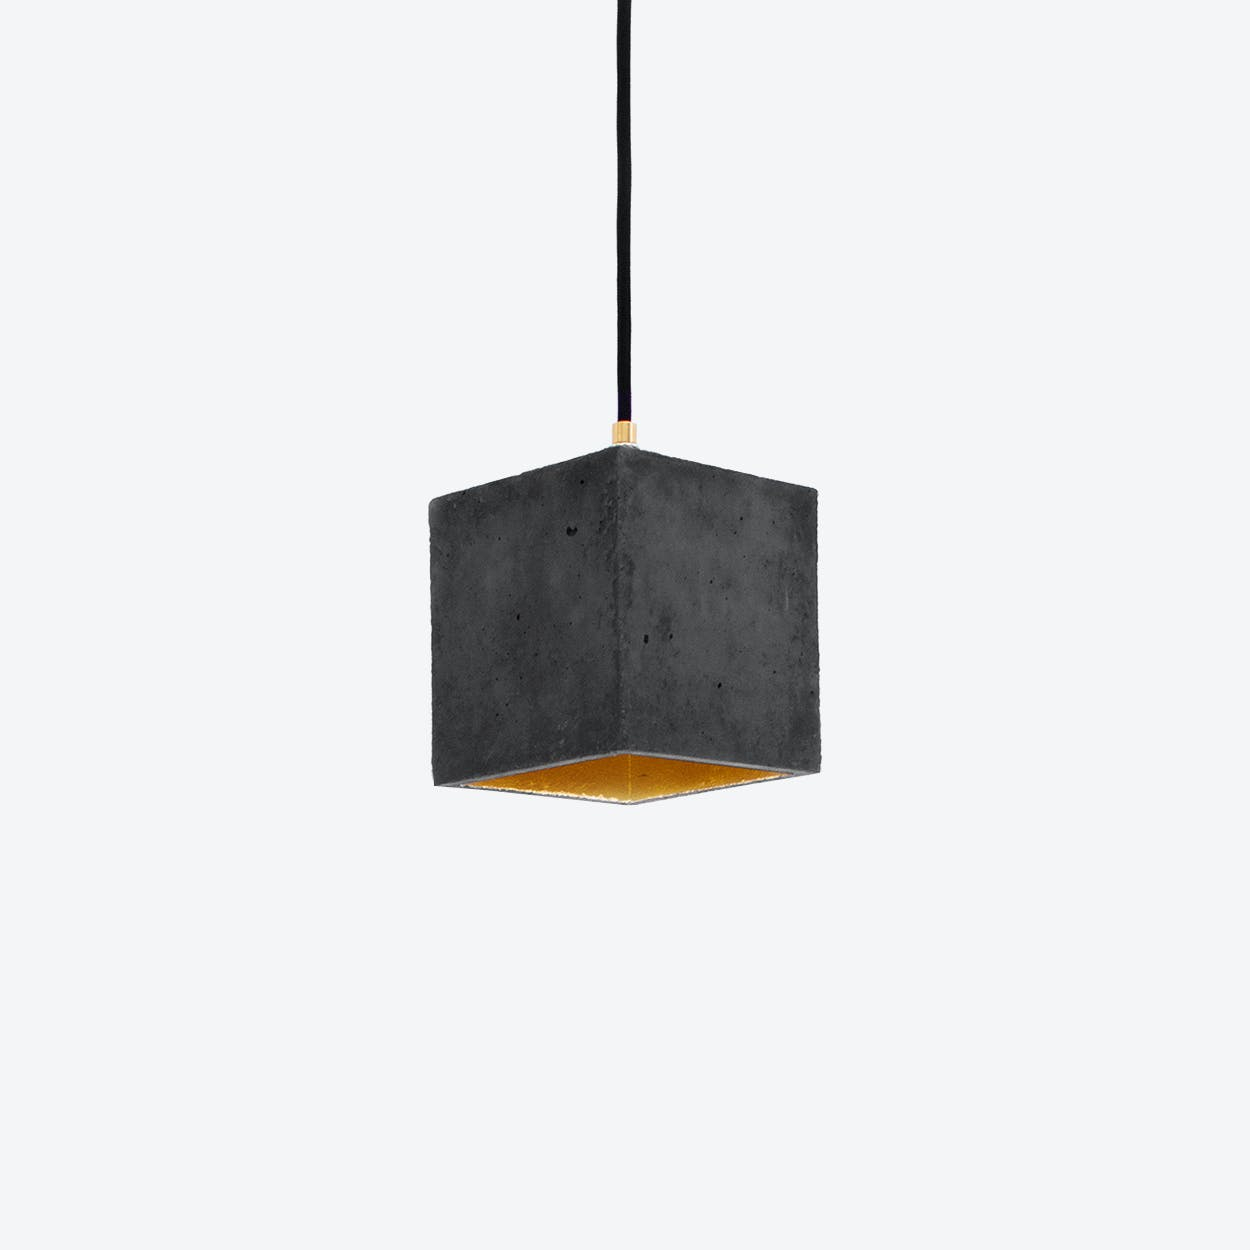 Concrete Pendant Light Cubic B1 in Dark Grey and Gold